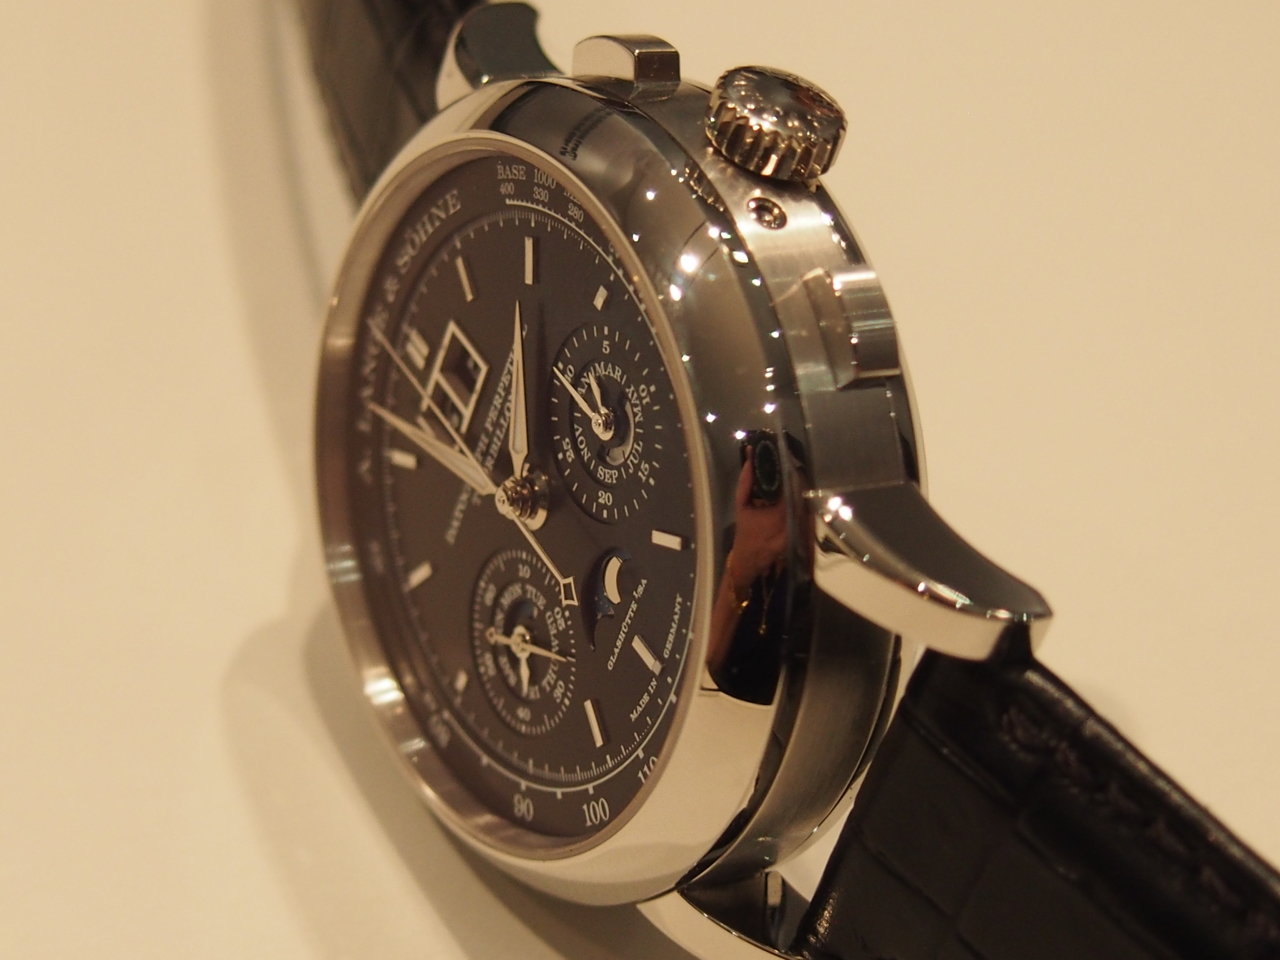 The watch is just over 14mm thick and boasts a tourbillon, chronograph and perpetual calendar accurate to 2100.